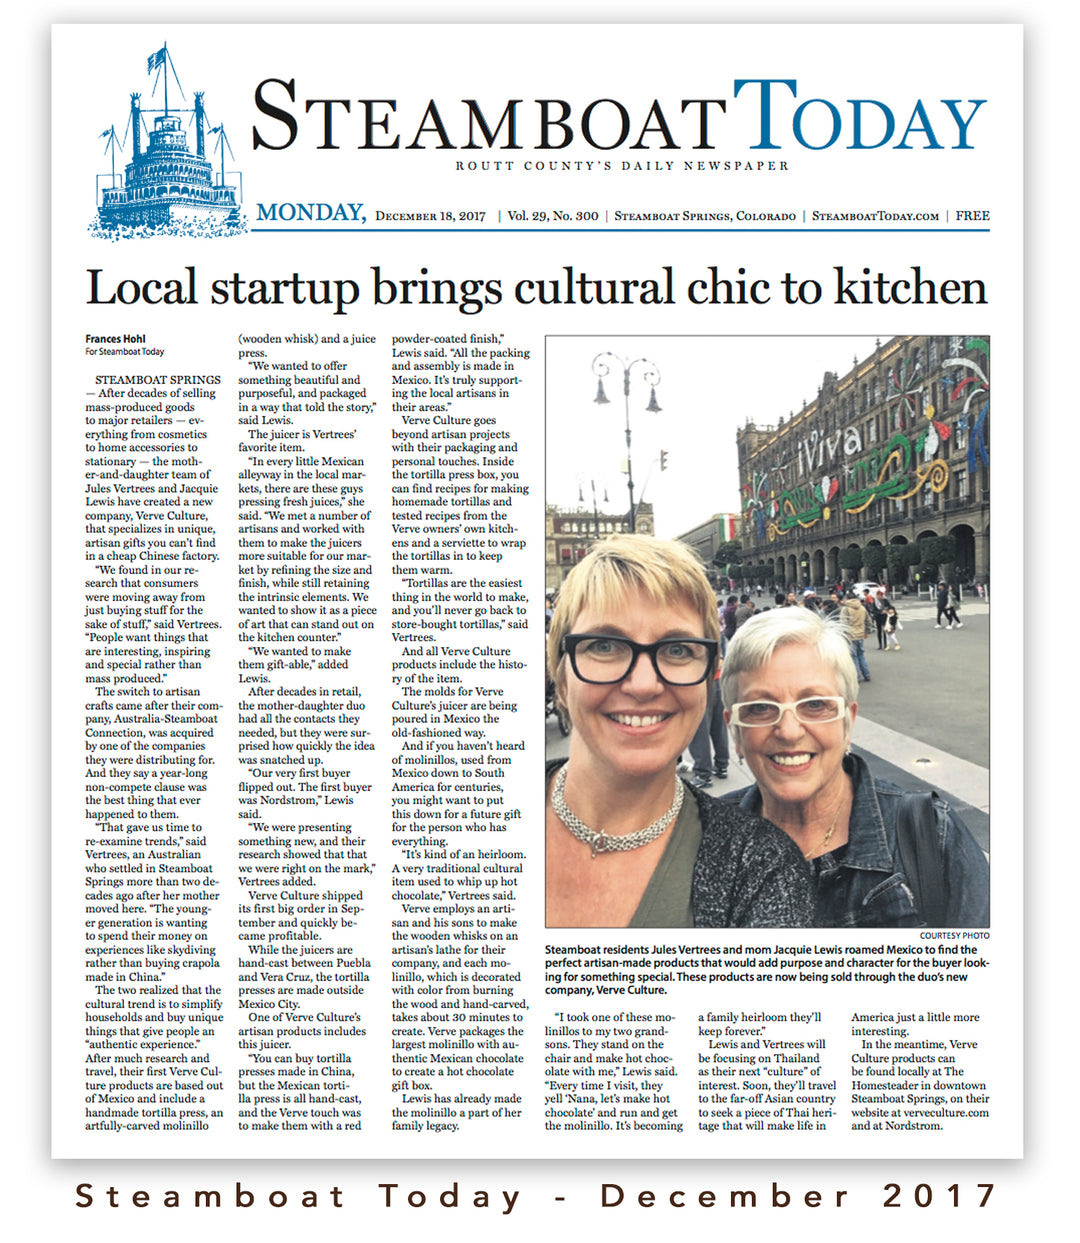 Steamboat Today - Local startup brings cultural chic to kitchen